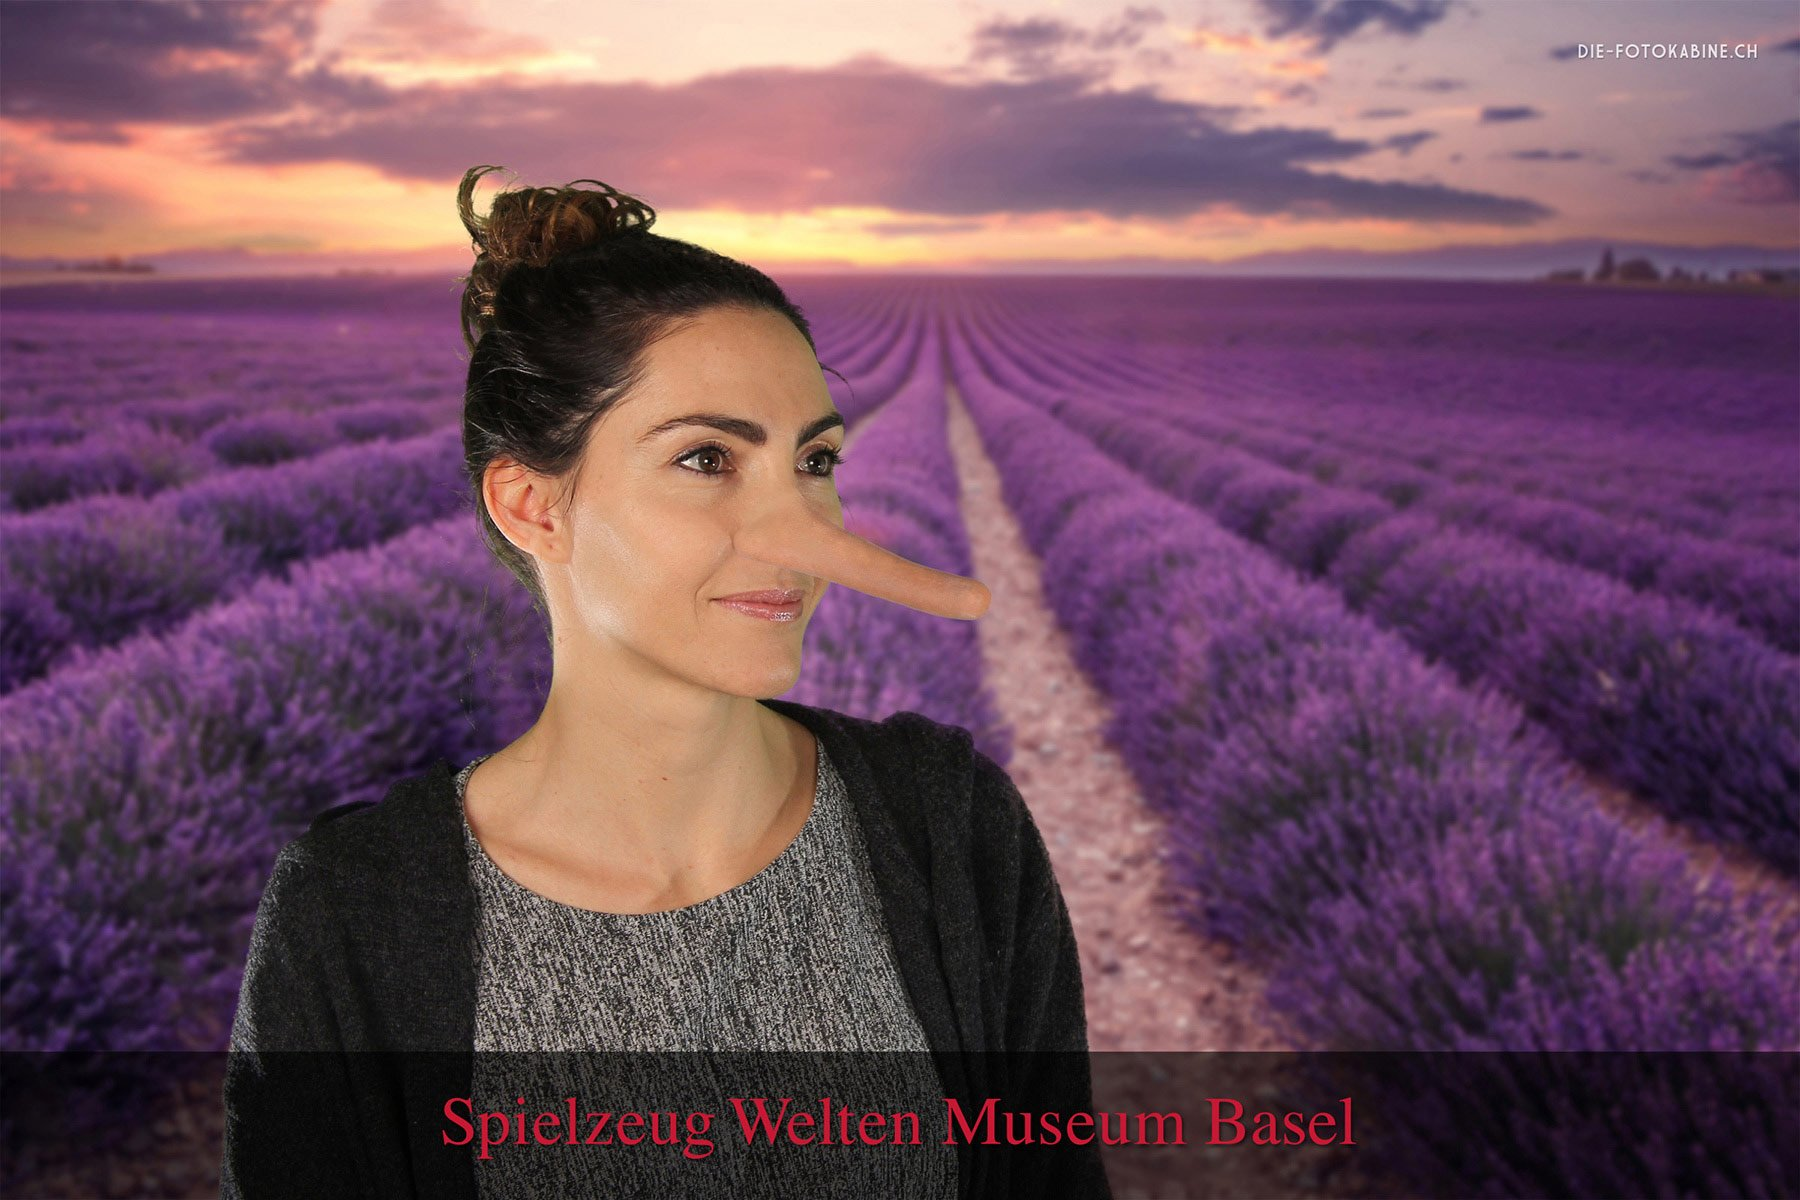 Greenscreen Fotostudio an der Museumsnacht 2018 in Basel